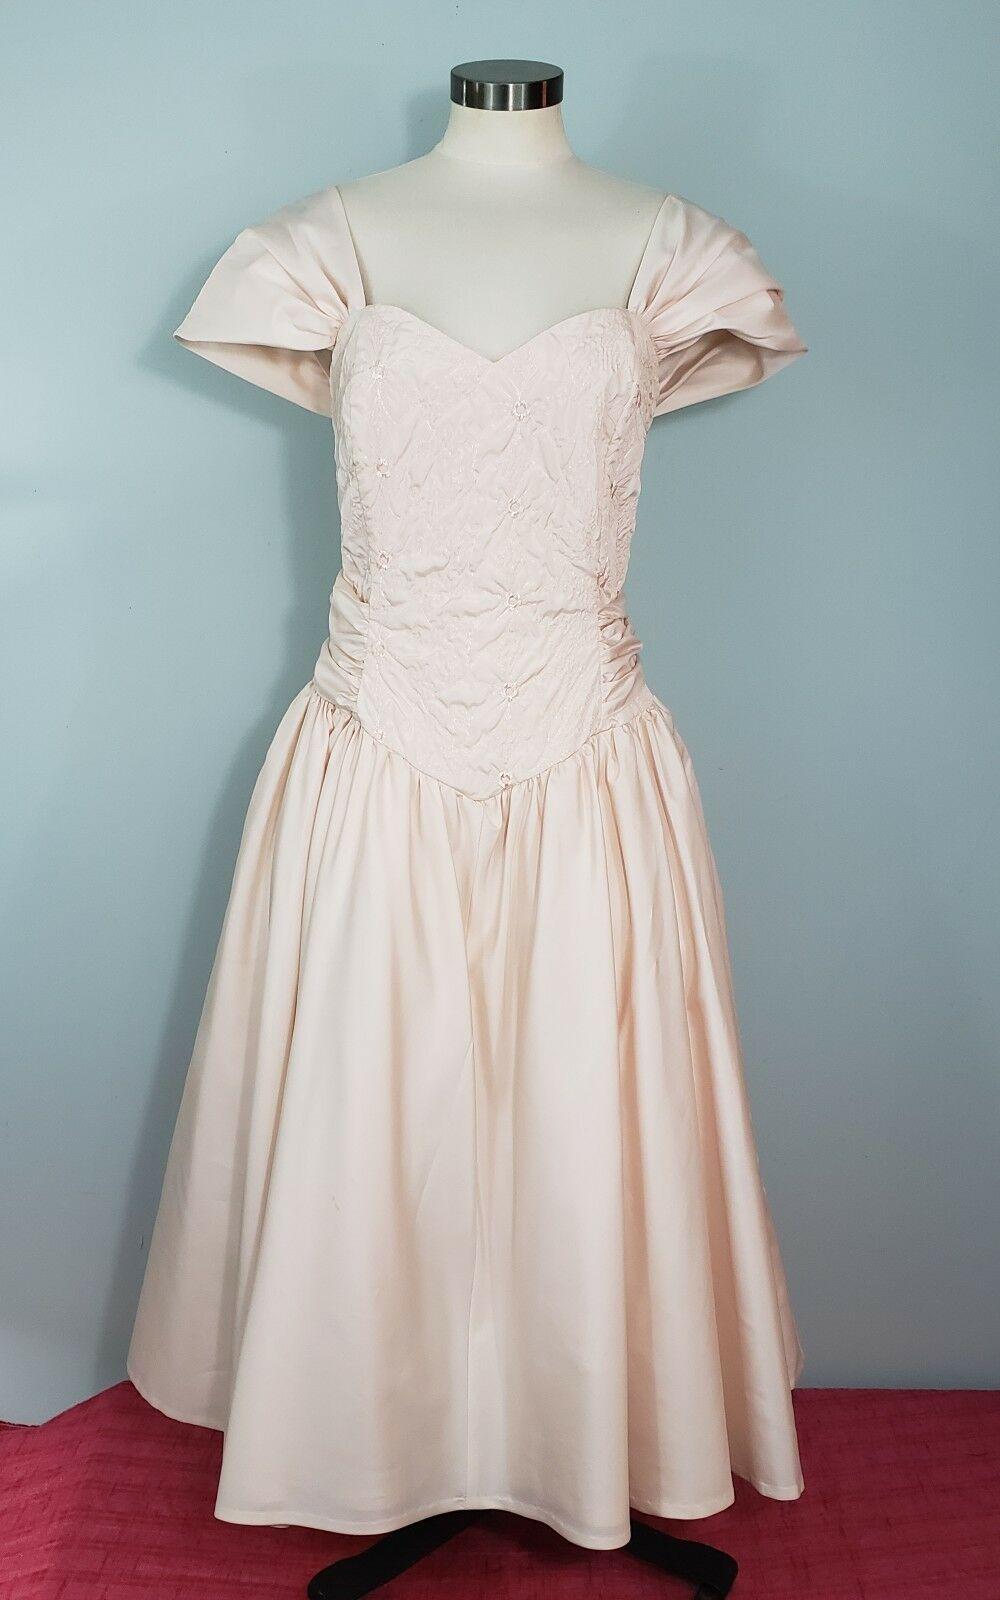 Cachet Evening Dress Blaush Rosa Embroidery Vintage 50s Style Cupcake Prom M L